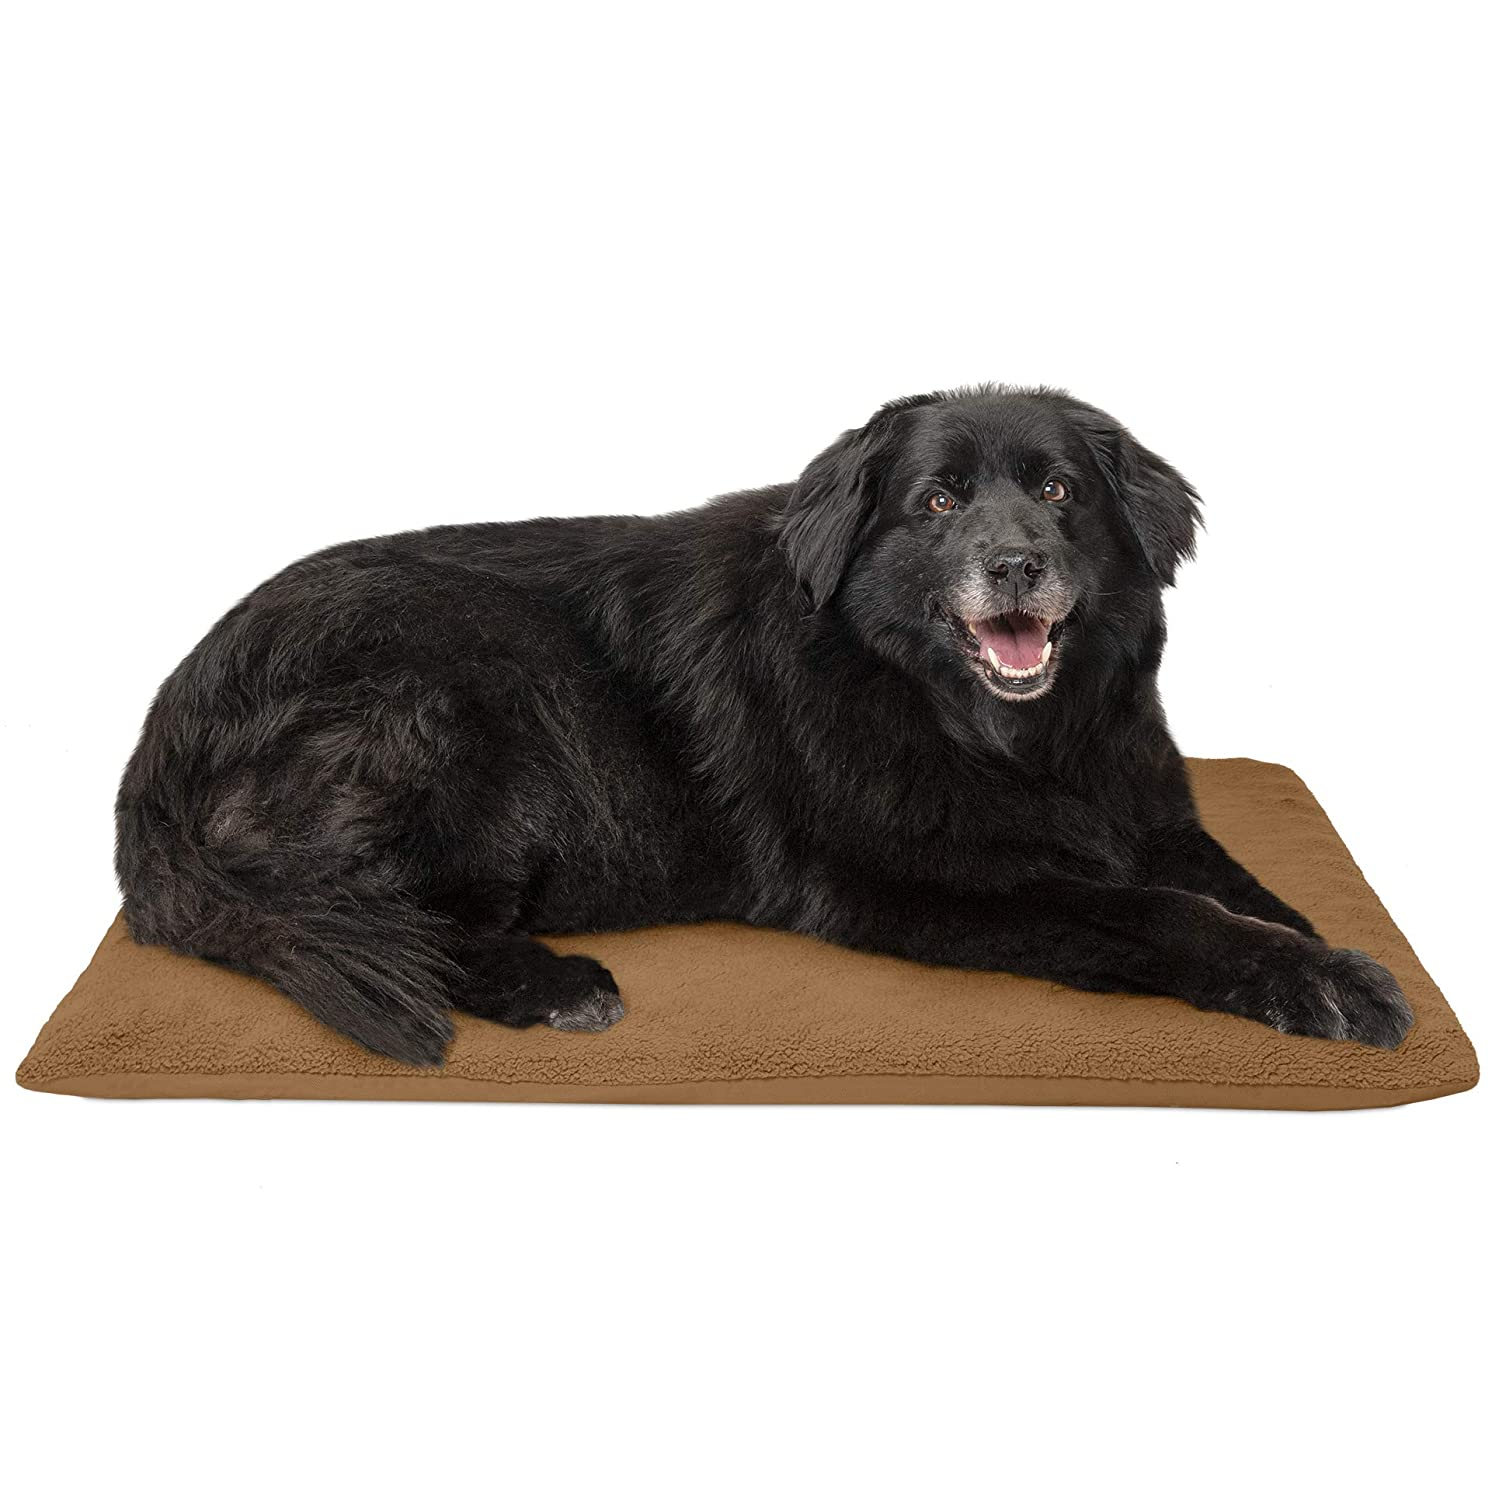 Camel (Terry) Large Camel (Terry) Large FurHaven Pet Dog Mattress   Terry Orthopedic Mat for Dogs & Cats, Camel, Large